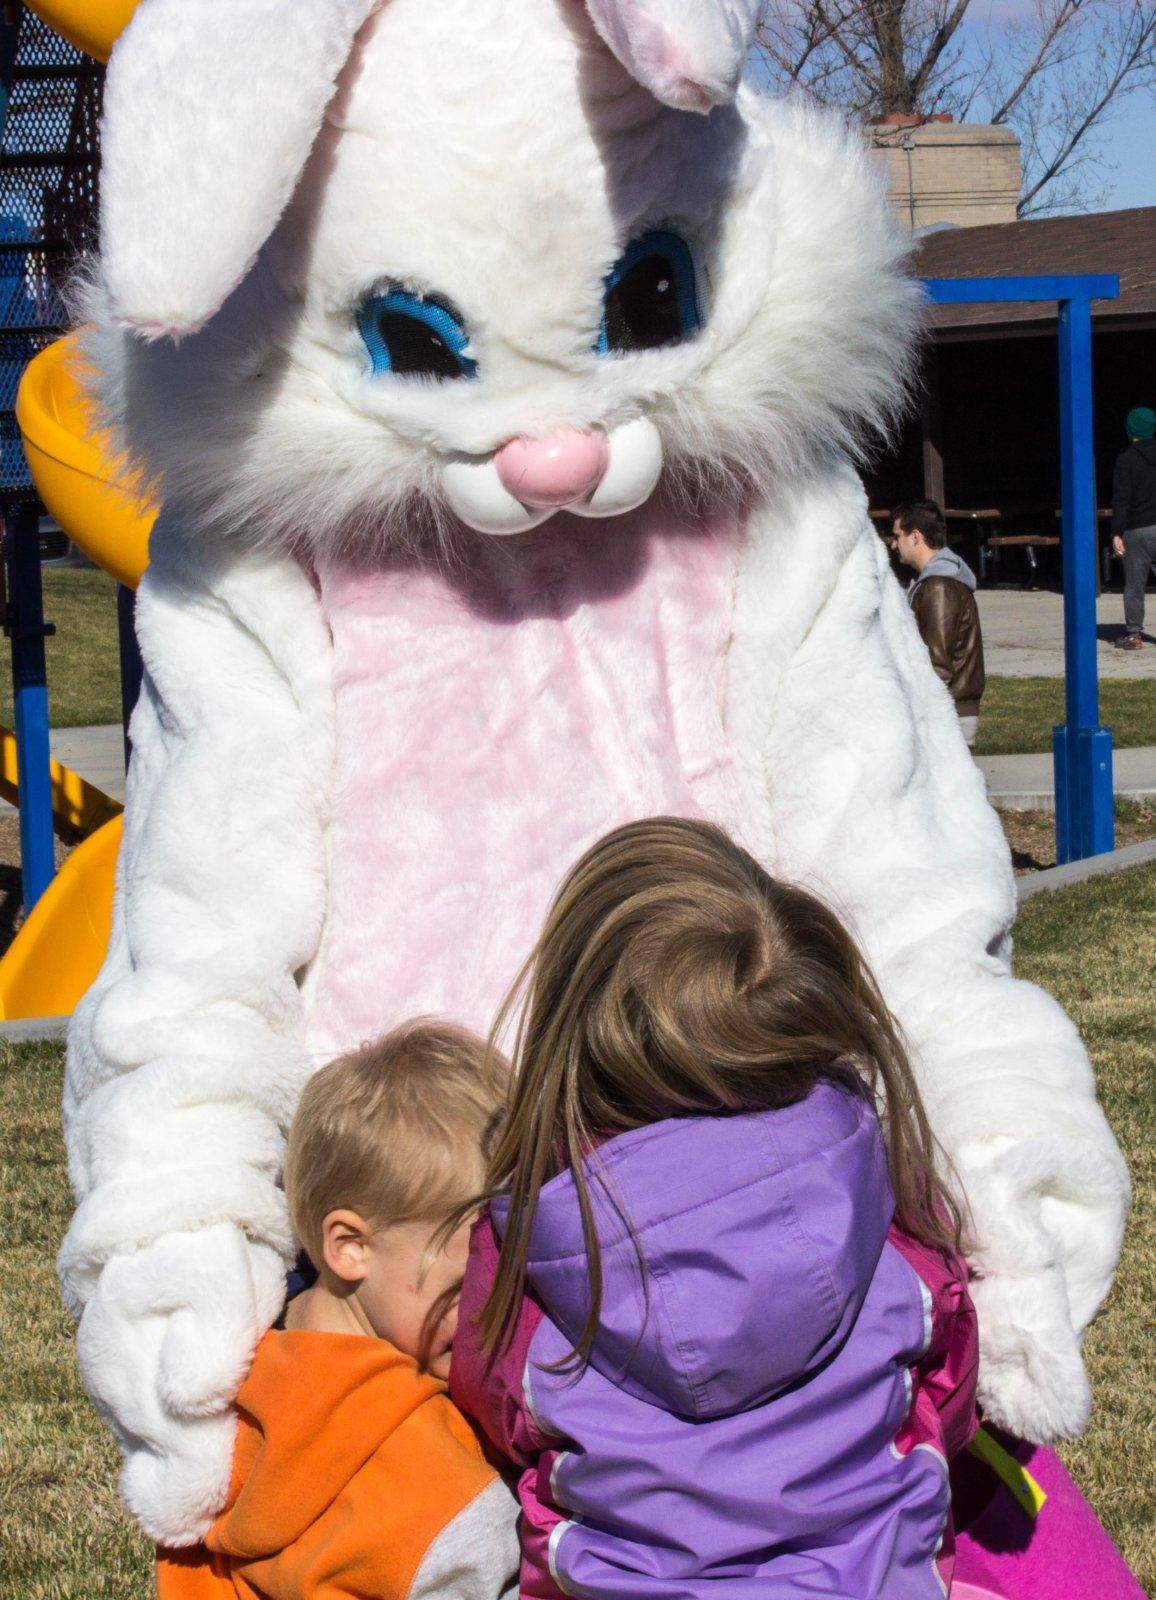 The Easter Bunny hugging children.